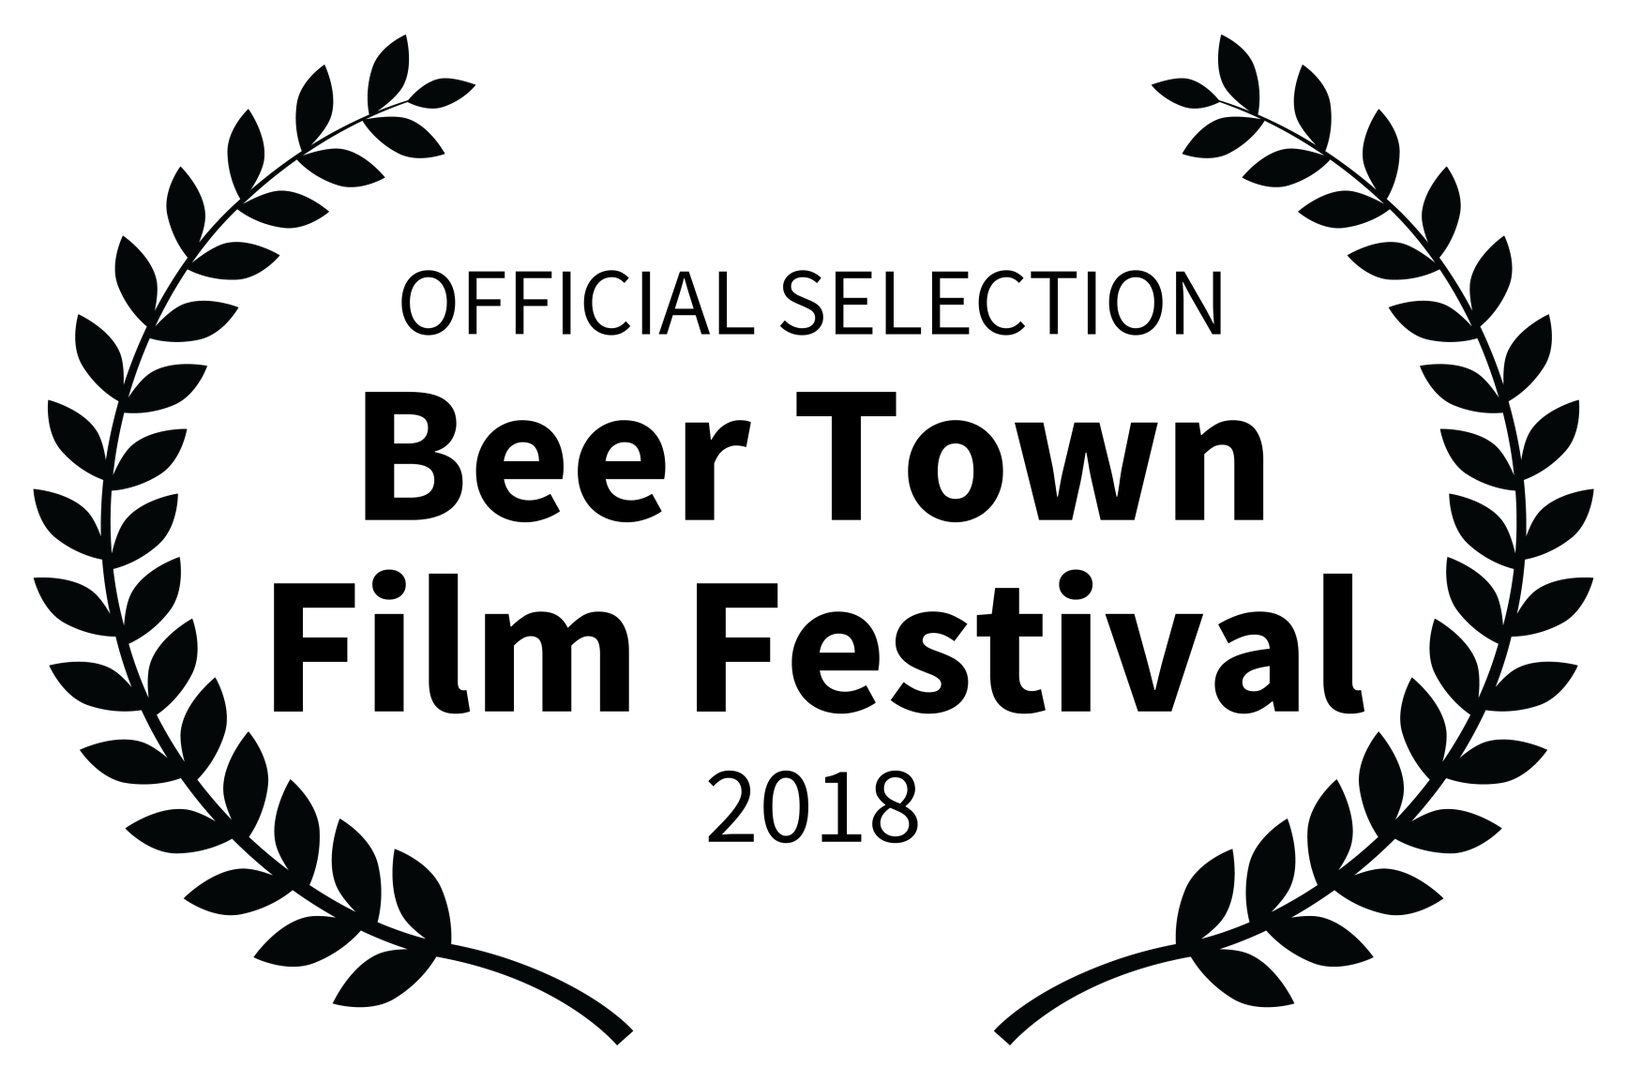 OFFICIAL SELECTION - Beer Town Film Fest